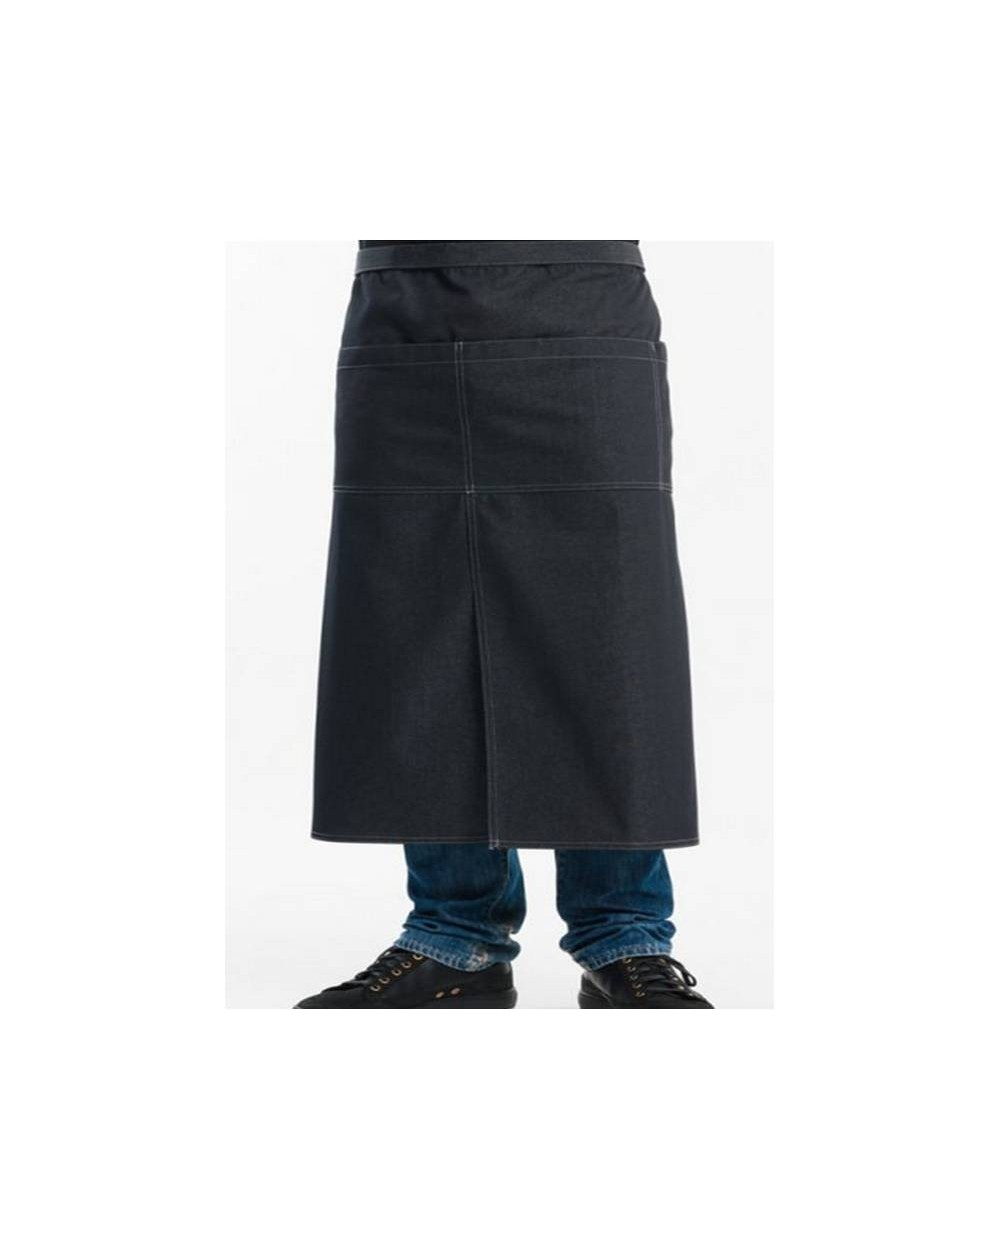 Delantal sin Peto 4 Pockets Black Denim Chaud Devant